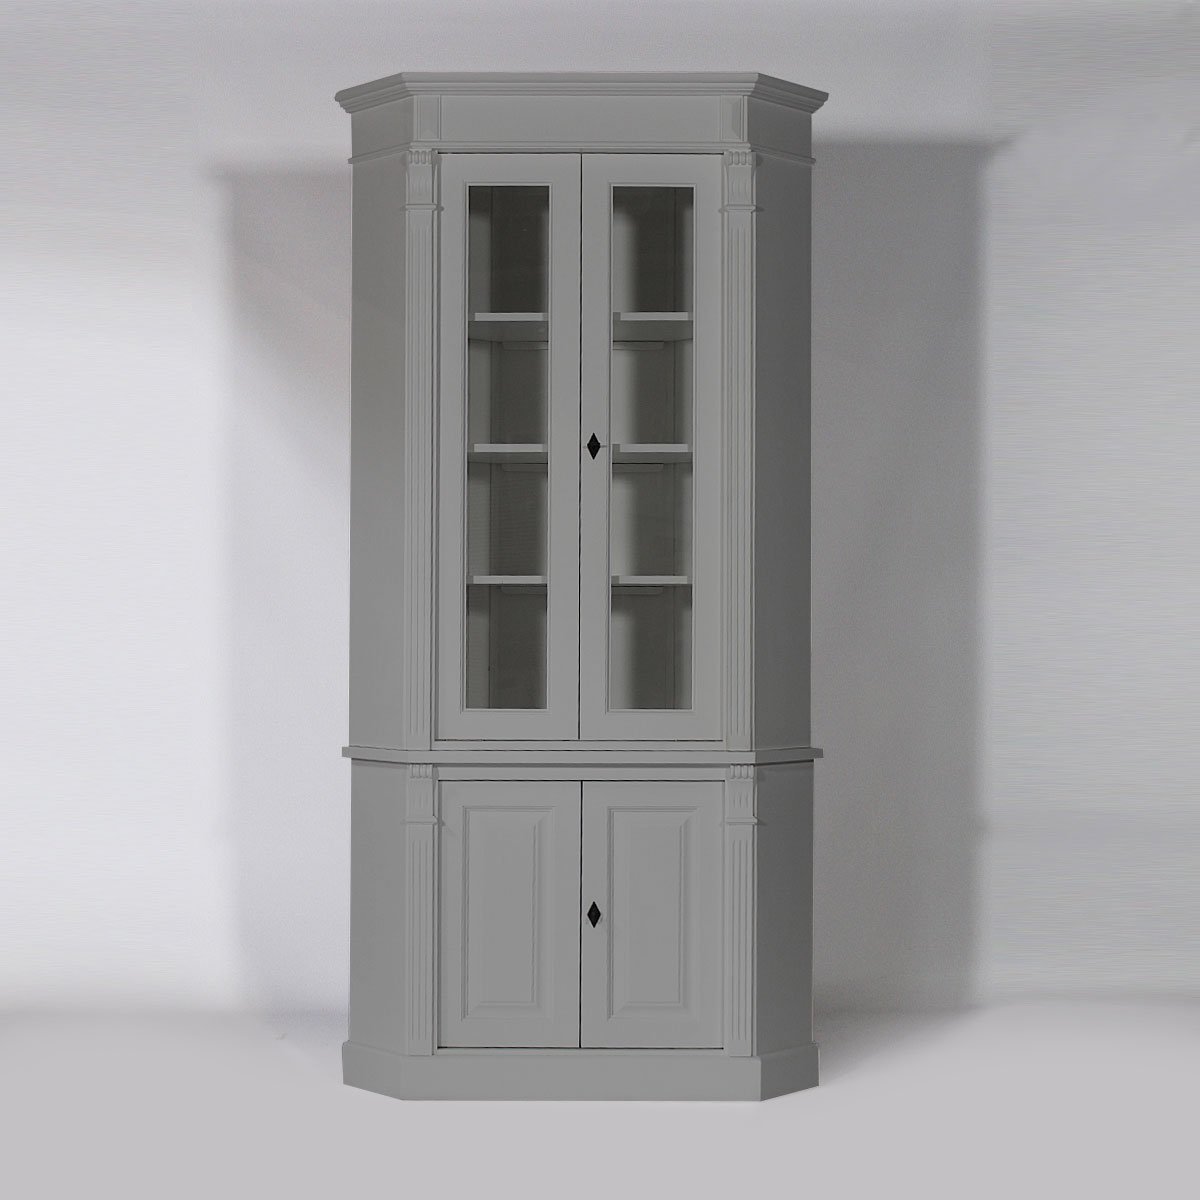 buffet d 39 angle bois massif vitr gris clair 4 portes made in meubles. Black Bedroom Furniture Sets. Home Design Ideas